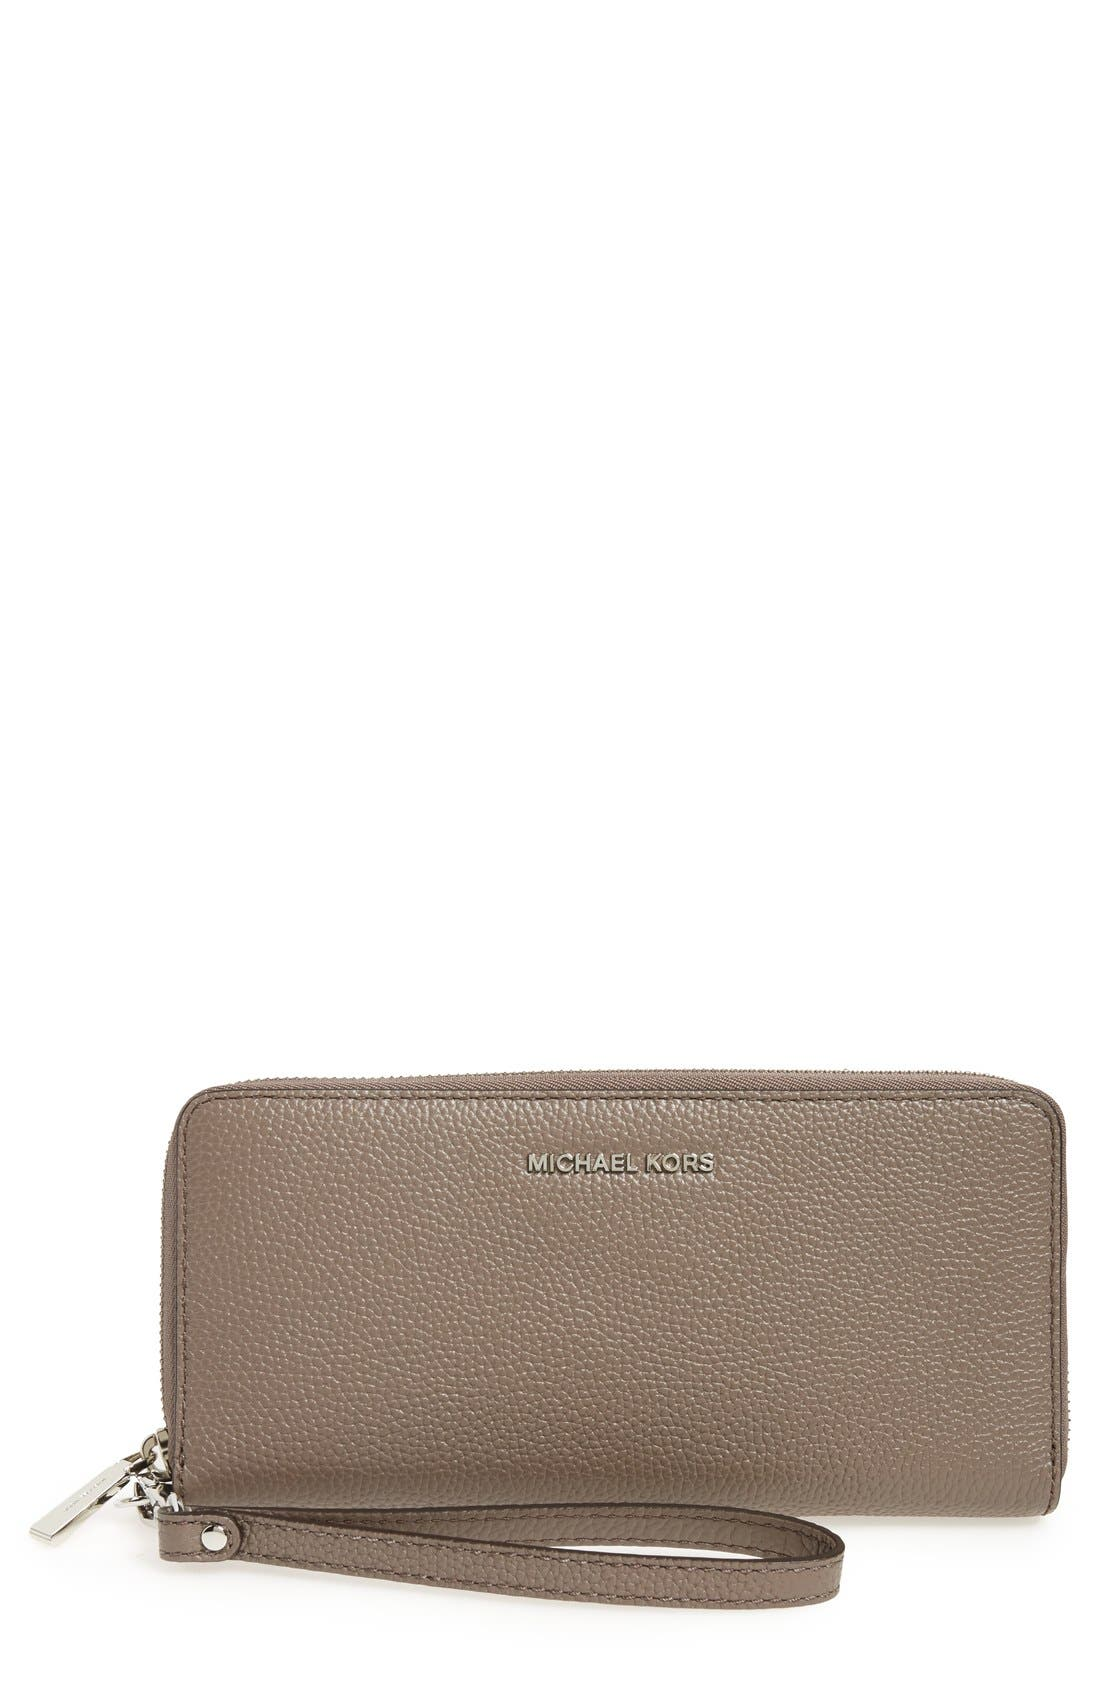 'Mercer' Leather Continental Wallet,                             Main thumbnail 4, color,